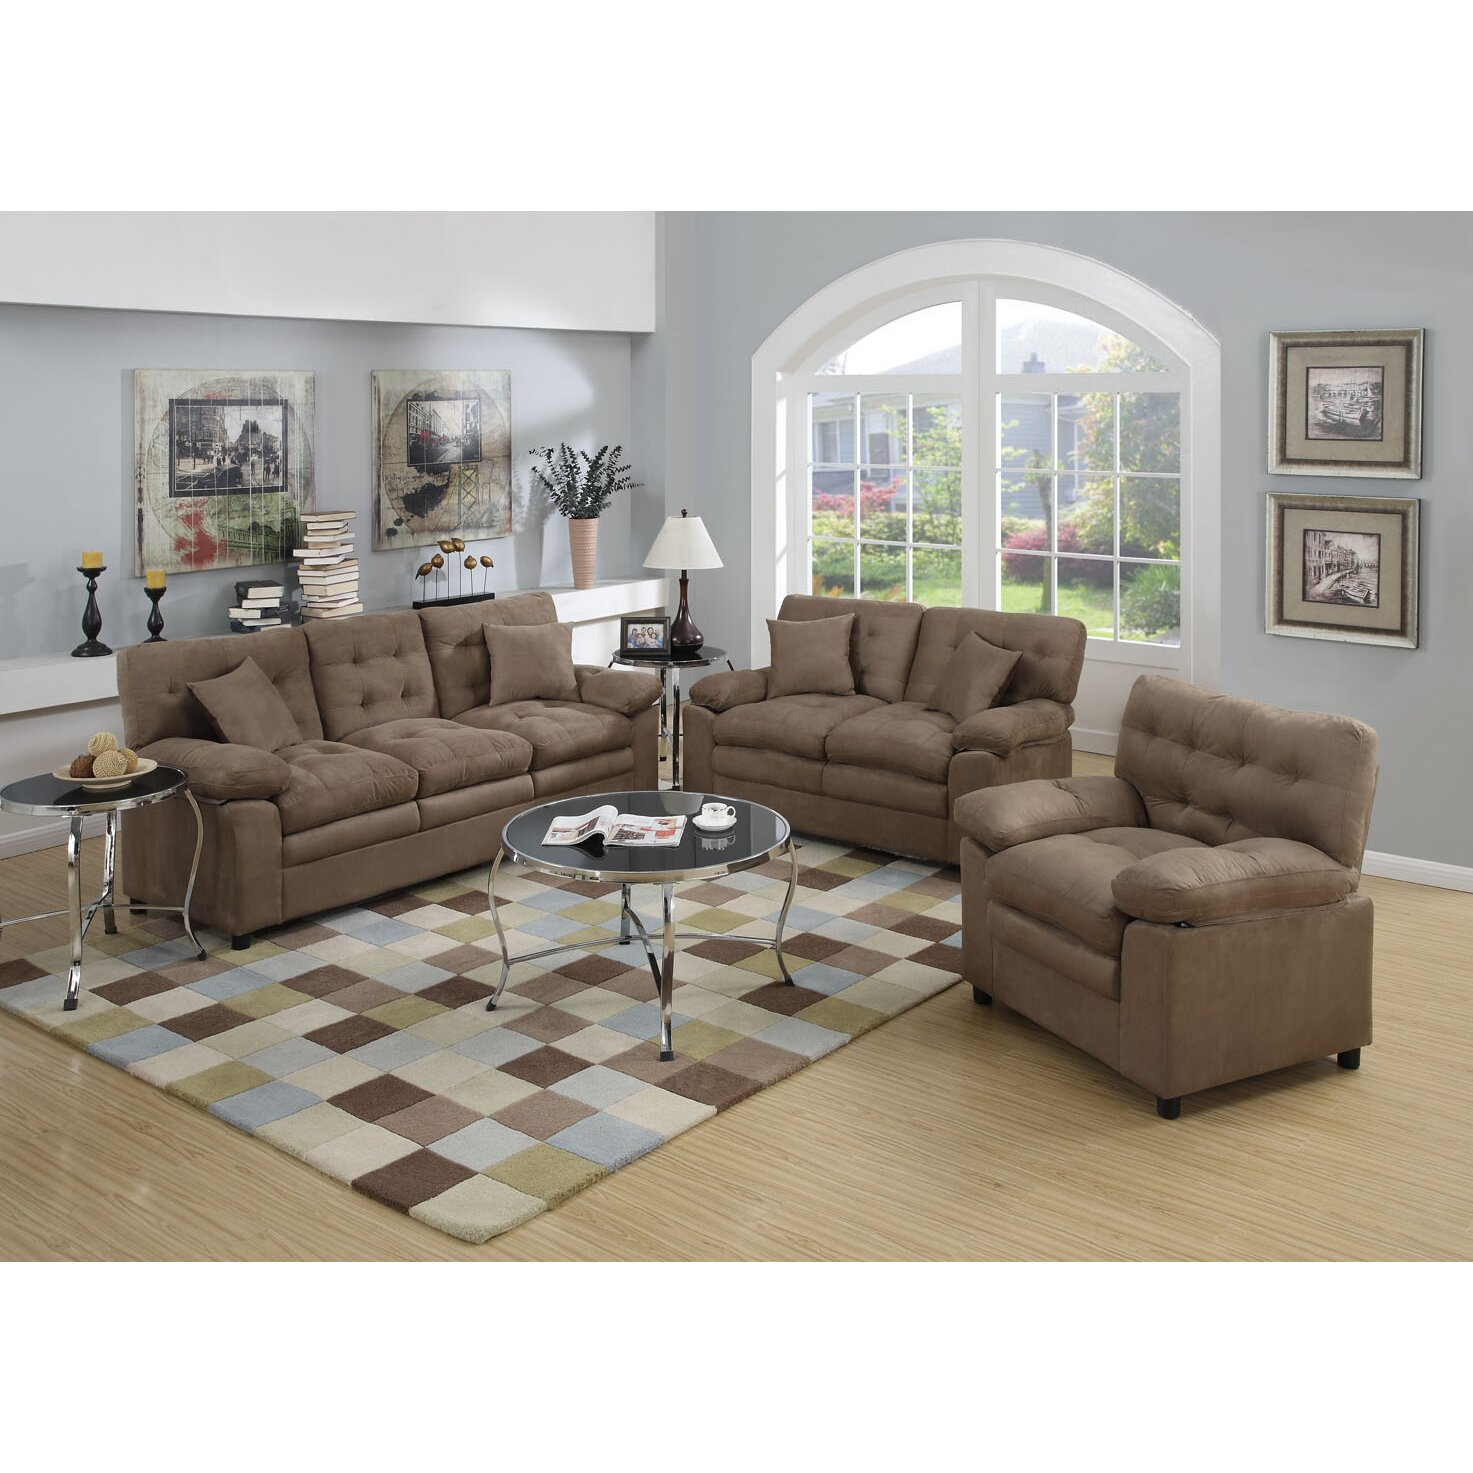 Poundex bobkona colona 3 piece living room set reviews for 8 piece living room furniture set